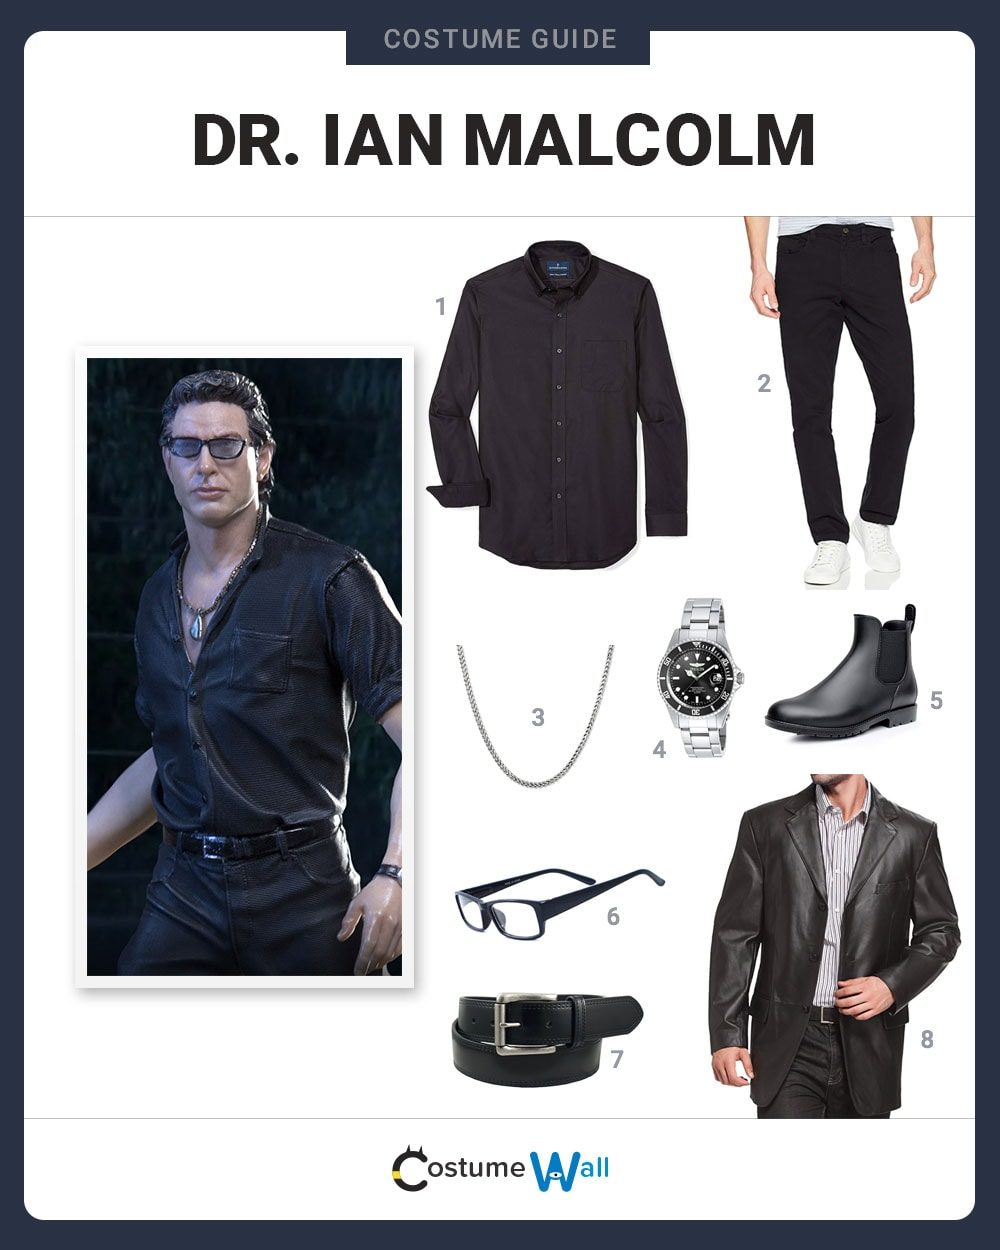 Dr. Ian Malcolm Costume Guide